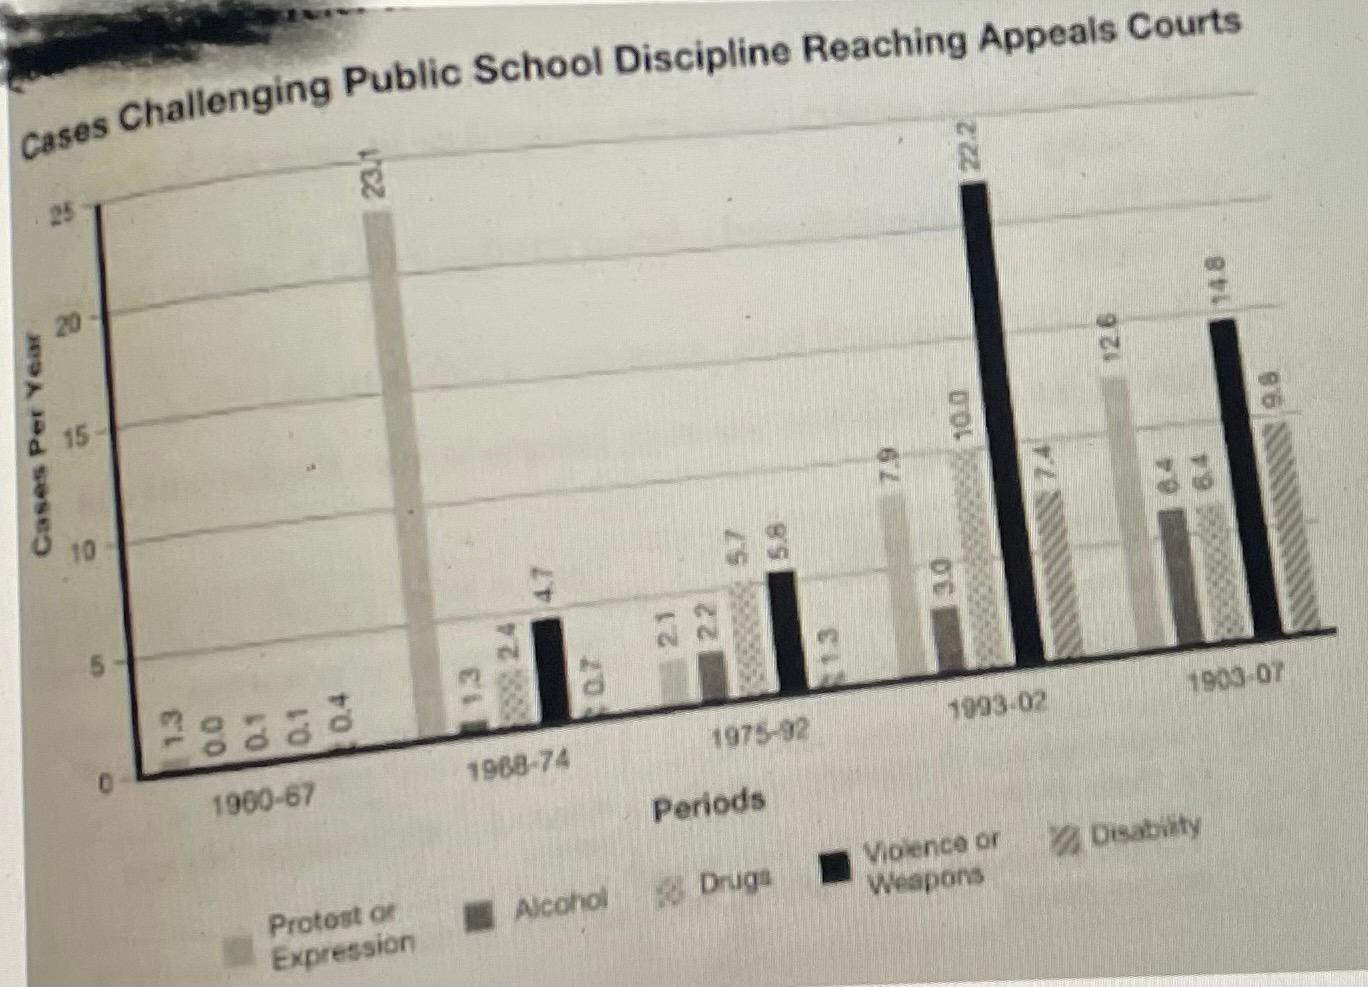 Cases Challenging Public School Discipline Reaching Appeals Courts 222 ន៍ 23.11 20 126 100 9.8 Cases Per Year 15 10 21 33 190